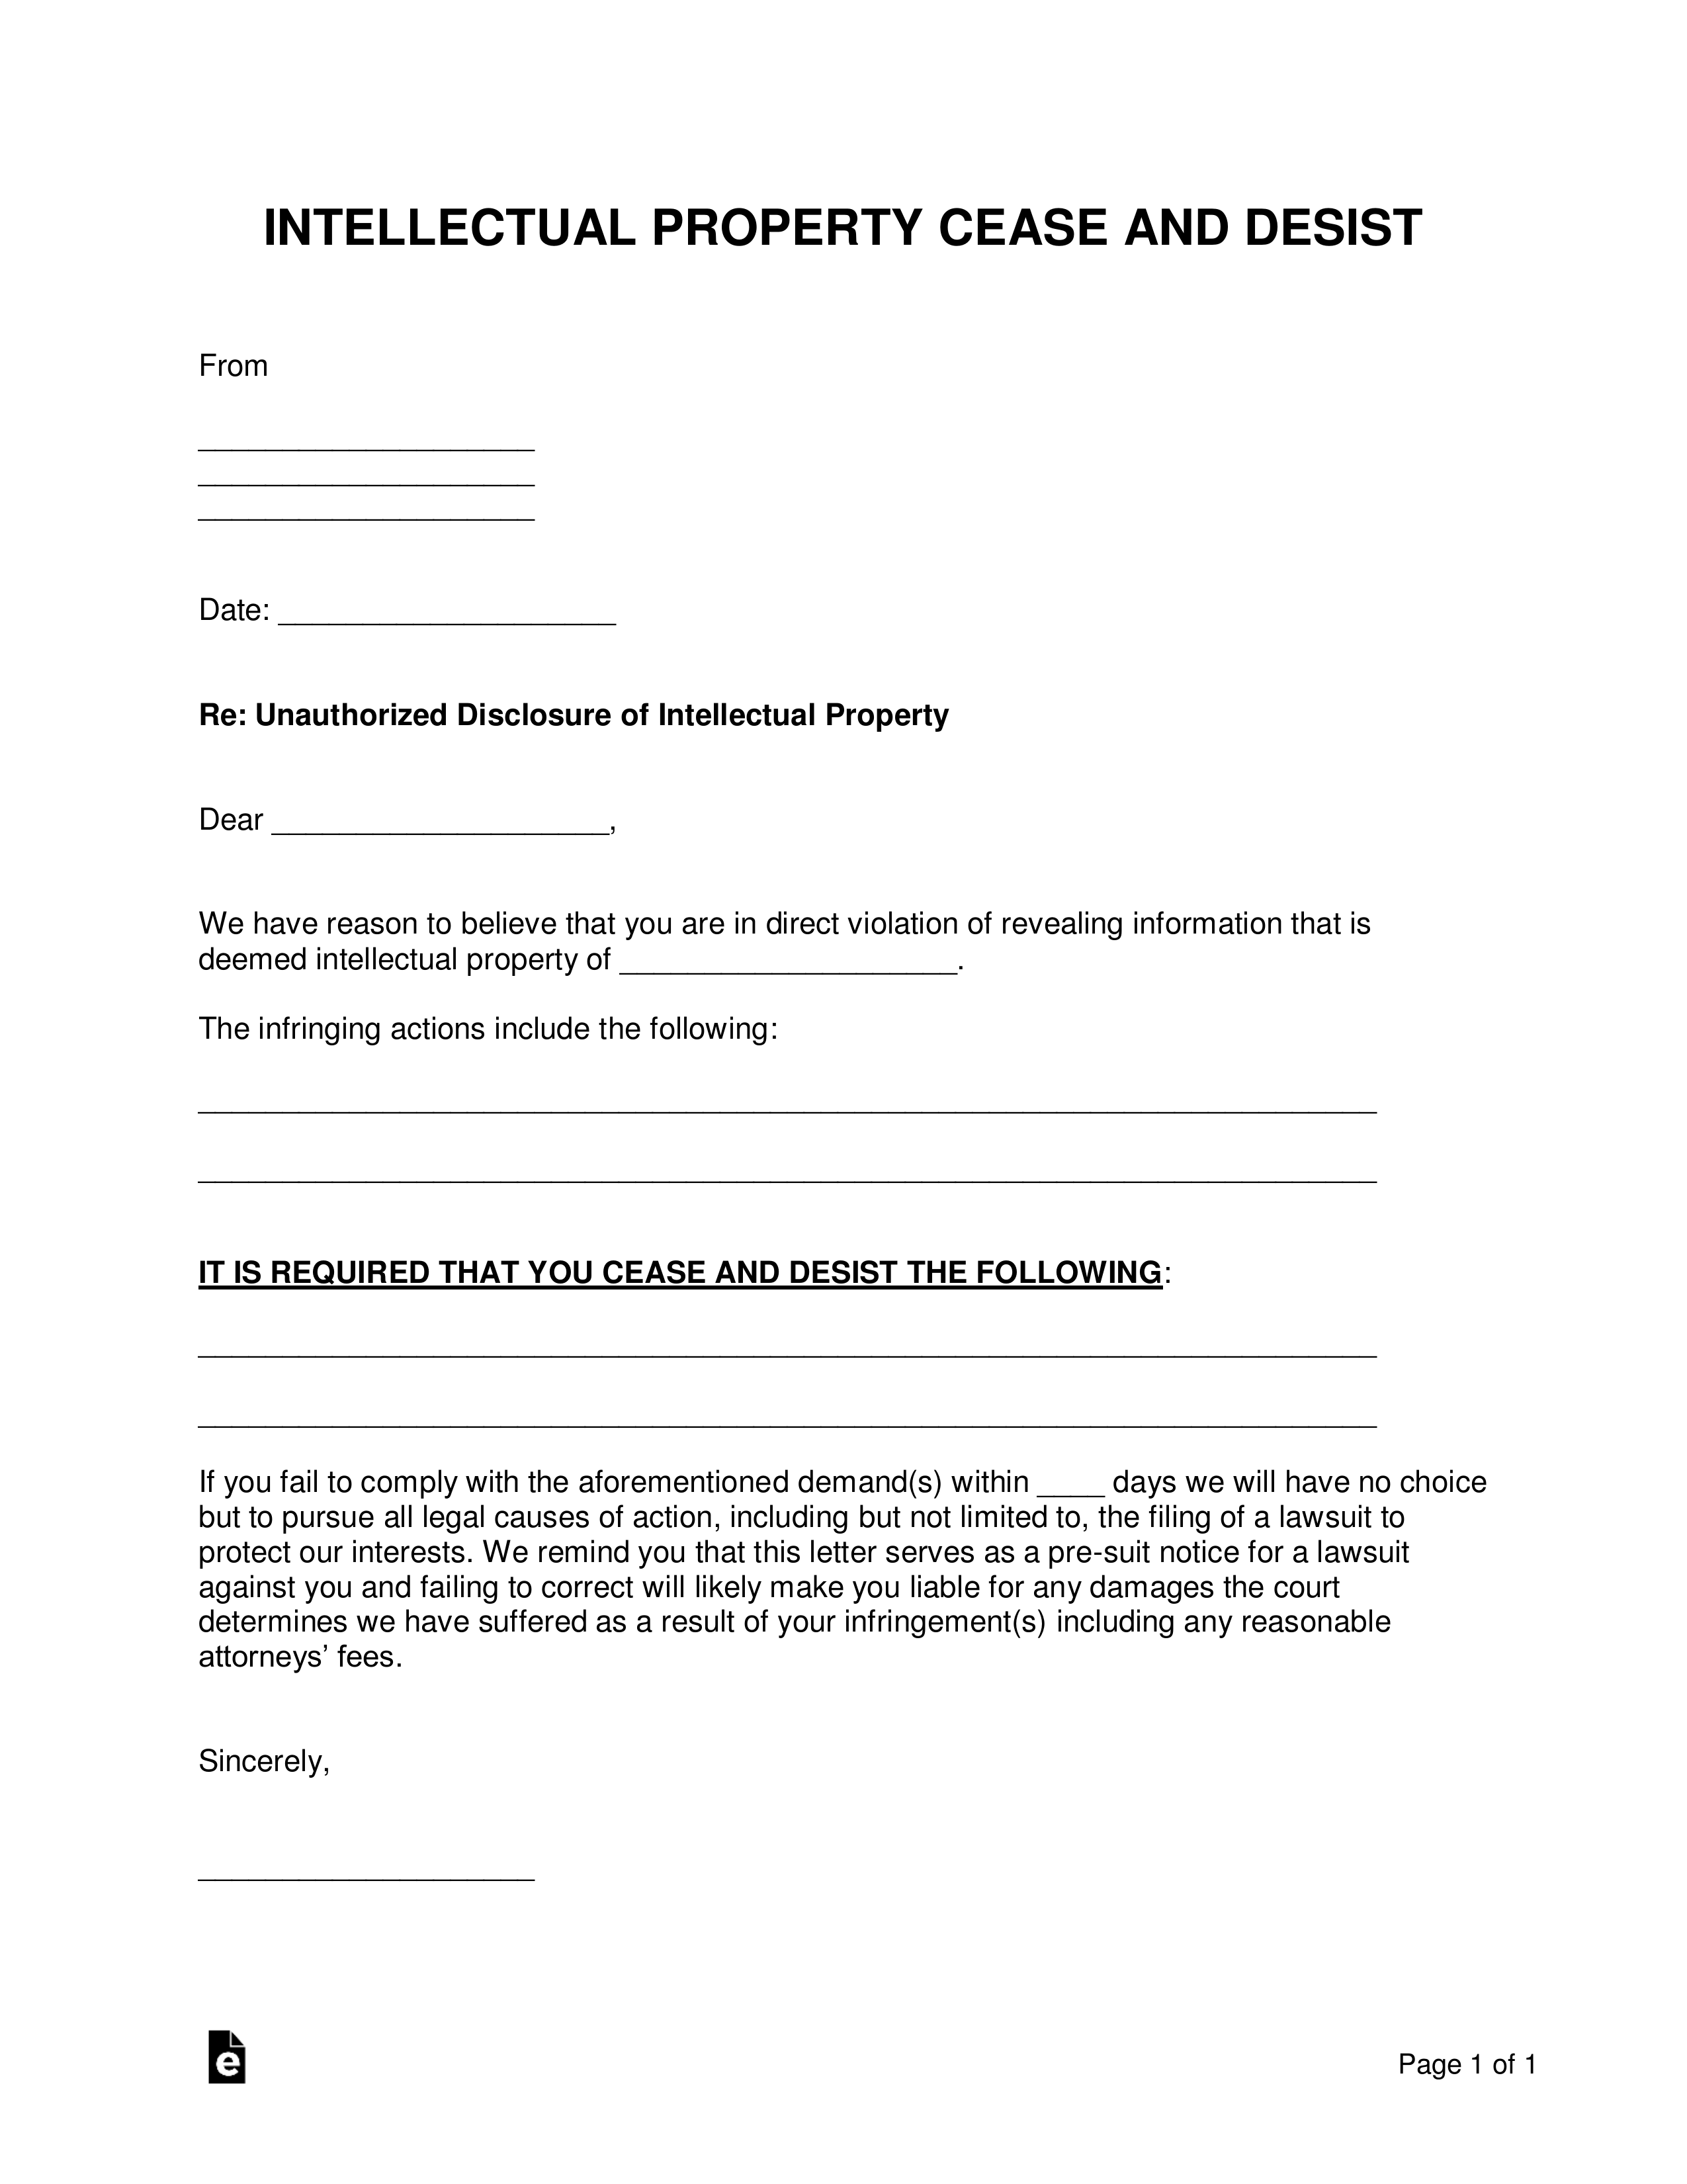 Sample Of Cease And Desist Letter from eforms.com